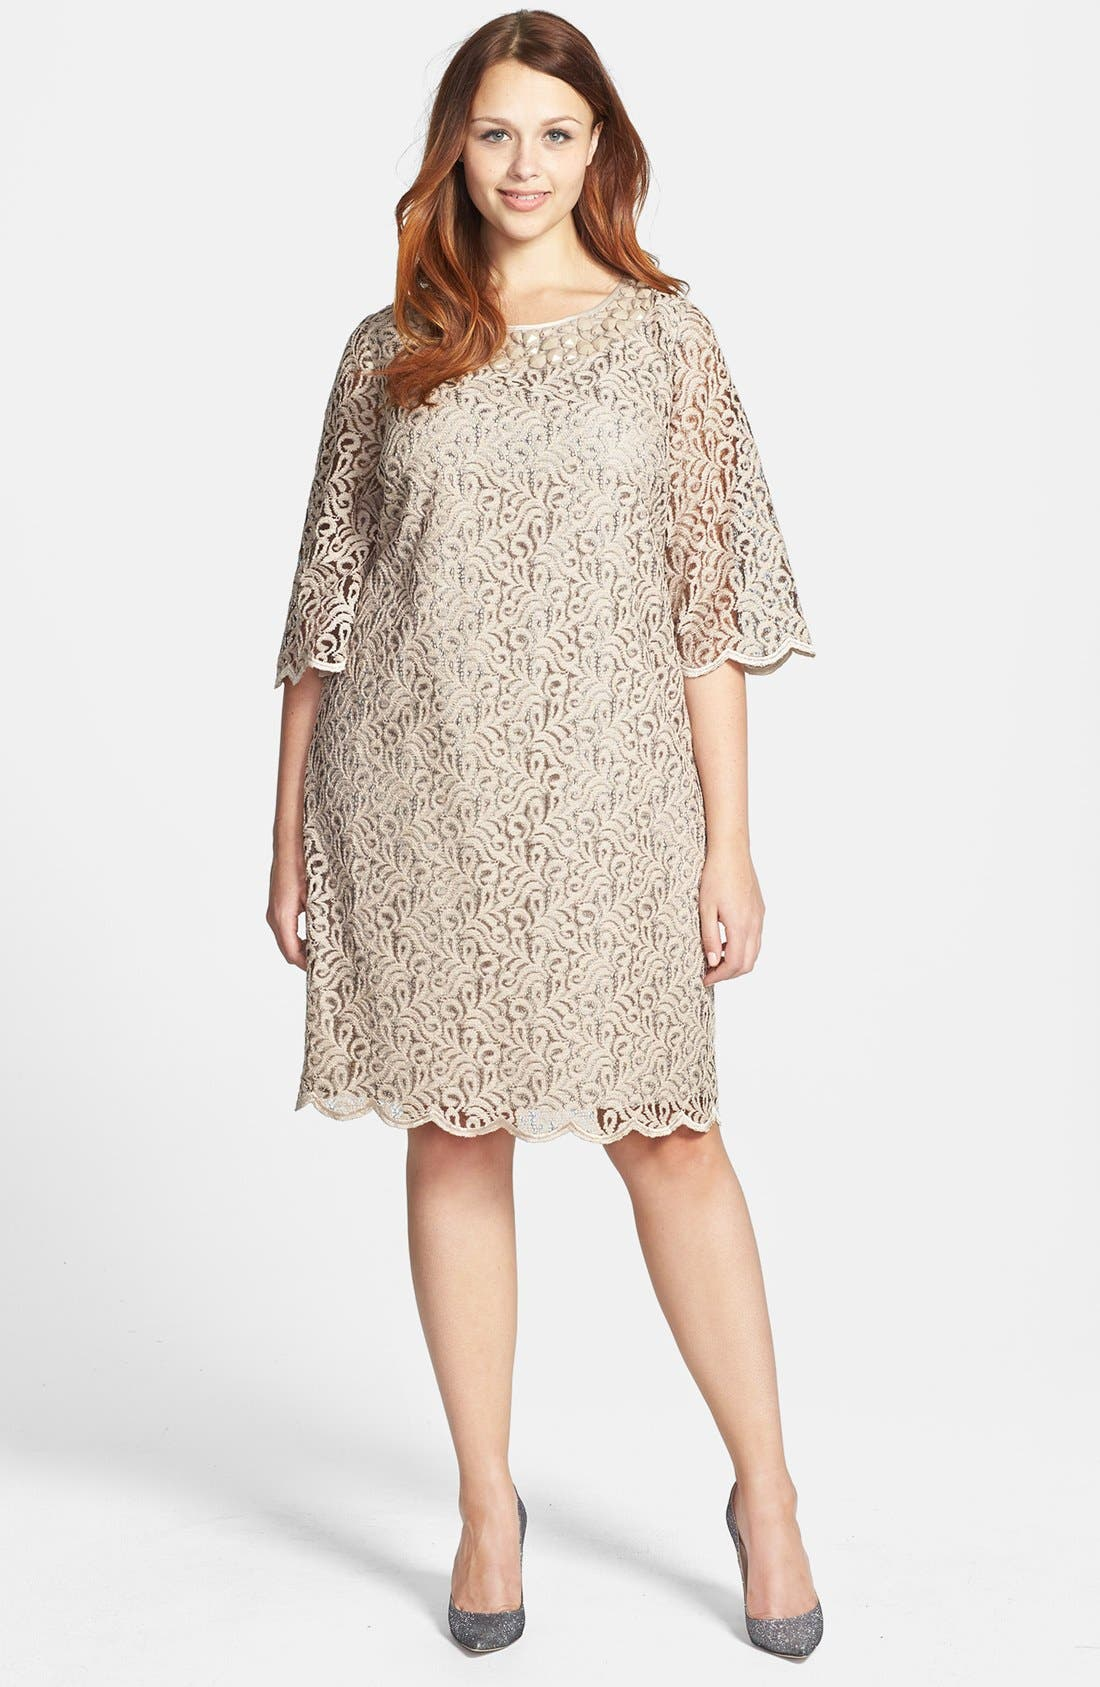 Alternate Image 1 Selected - Adrianna Papell Bell Sleeve Beaded Lace Shift Dress (Plus Size)